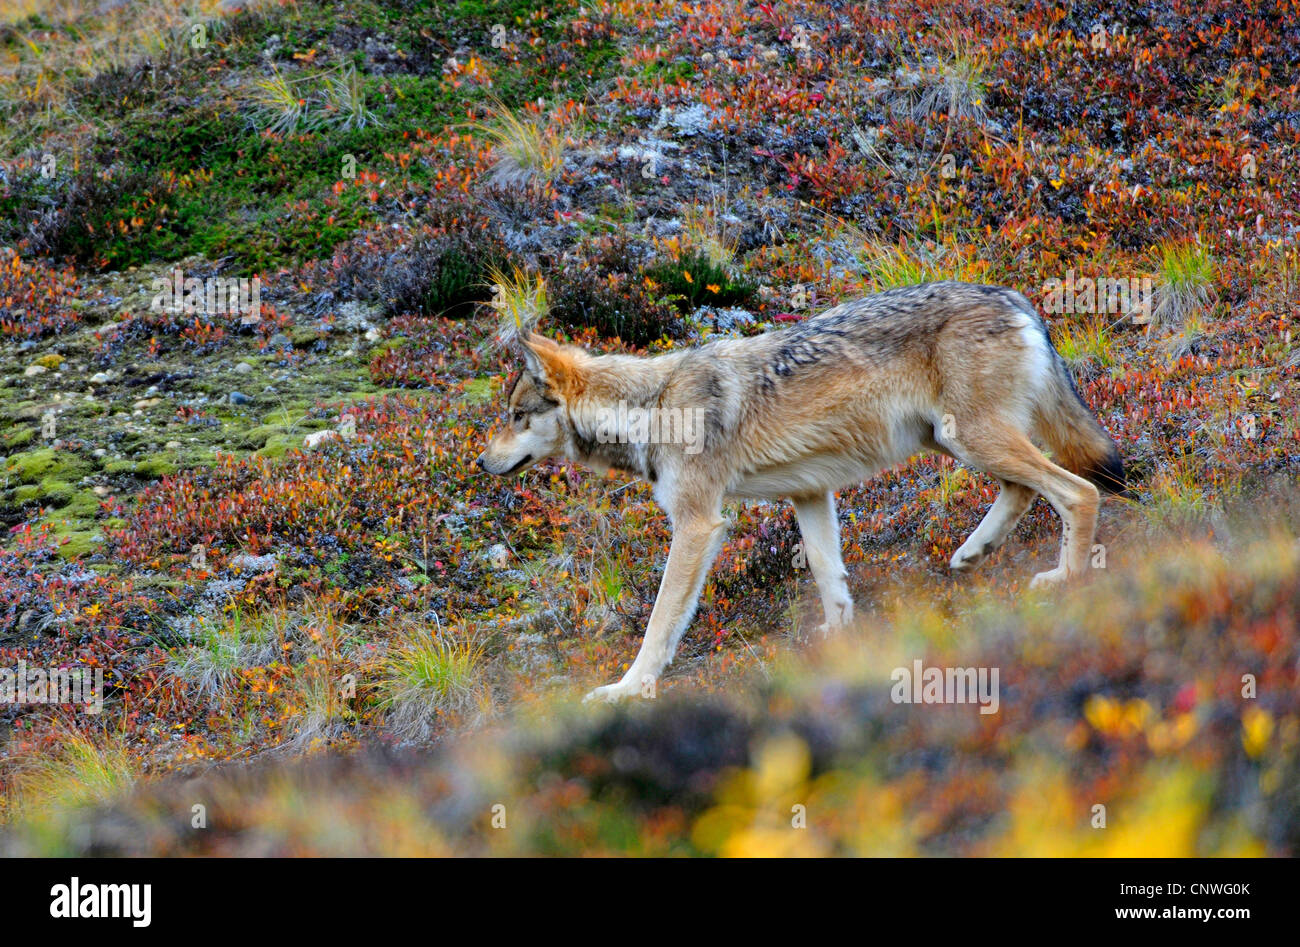 Mackenzie Valley Wolf, Rocky Mountain Wolf, Alaskan Tundra Wolf or Canadian Timber Wolf (Canis lupus occidentalis), - Stock Image